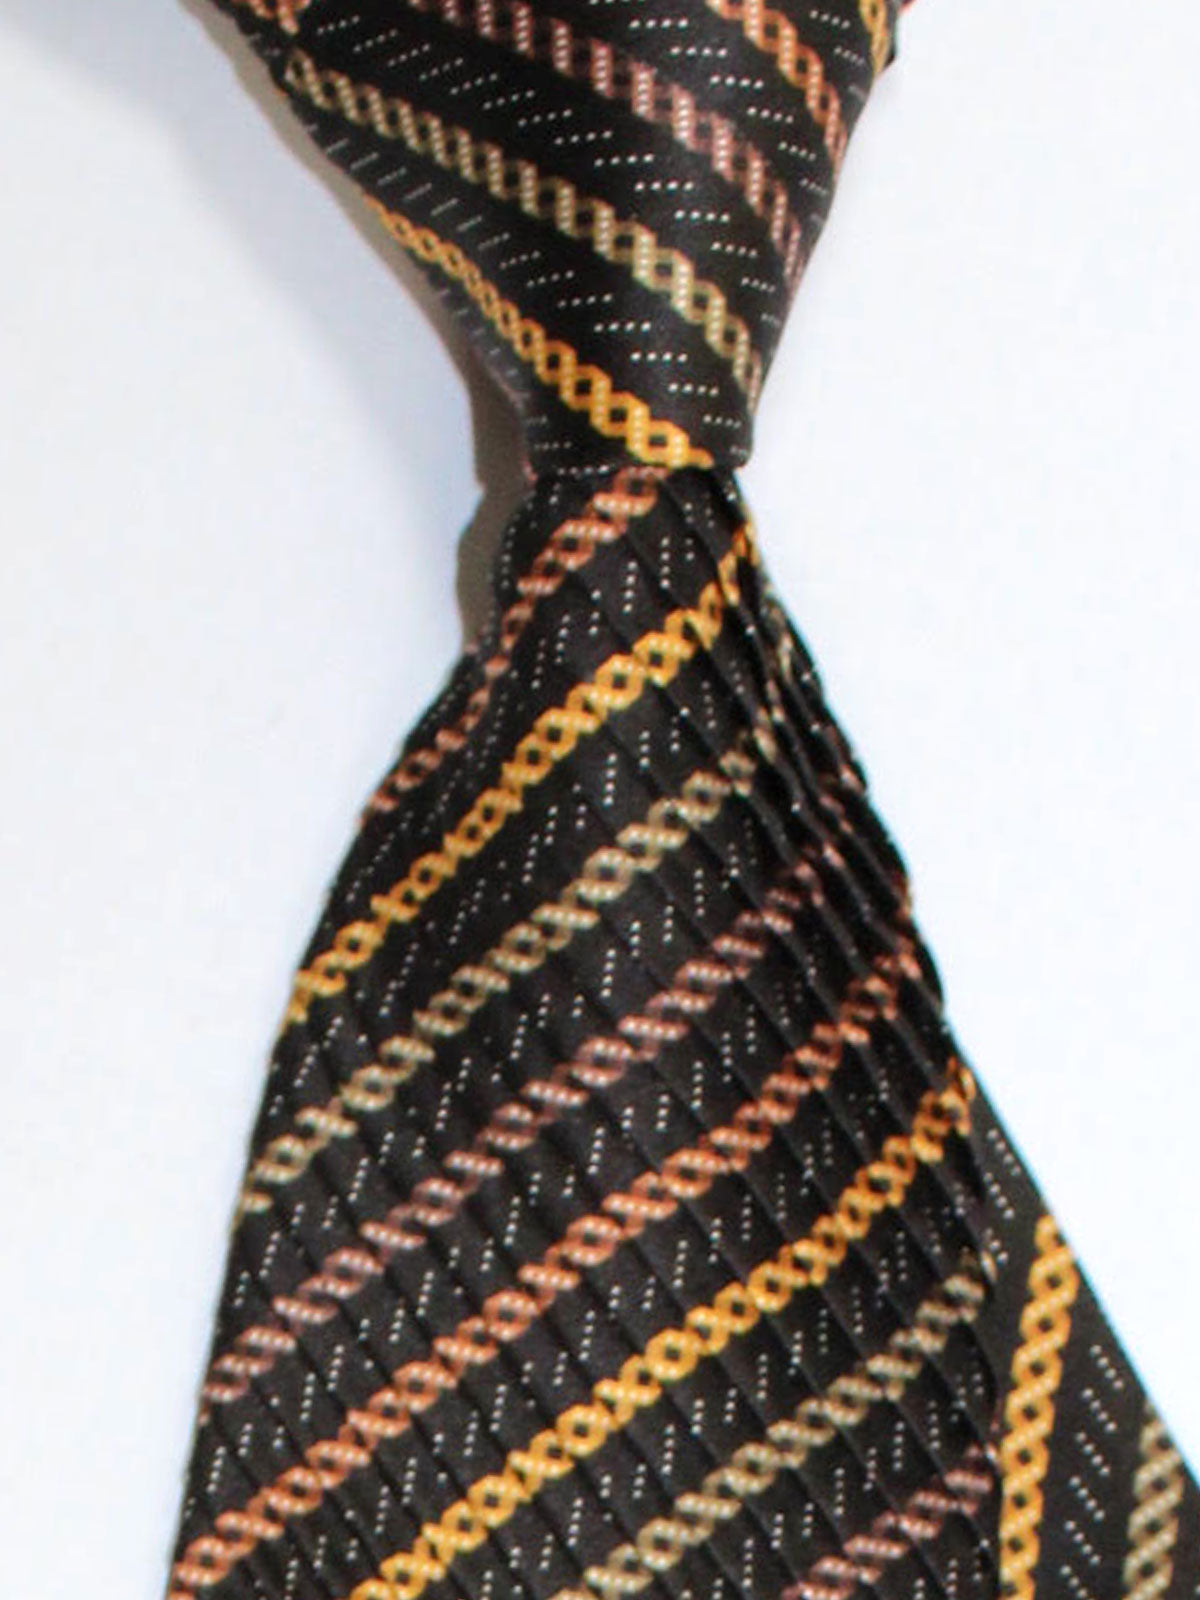 Vitaliano Pancaldi PLEATED SILK Tie Black Brown Orange Stripes